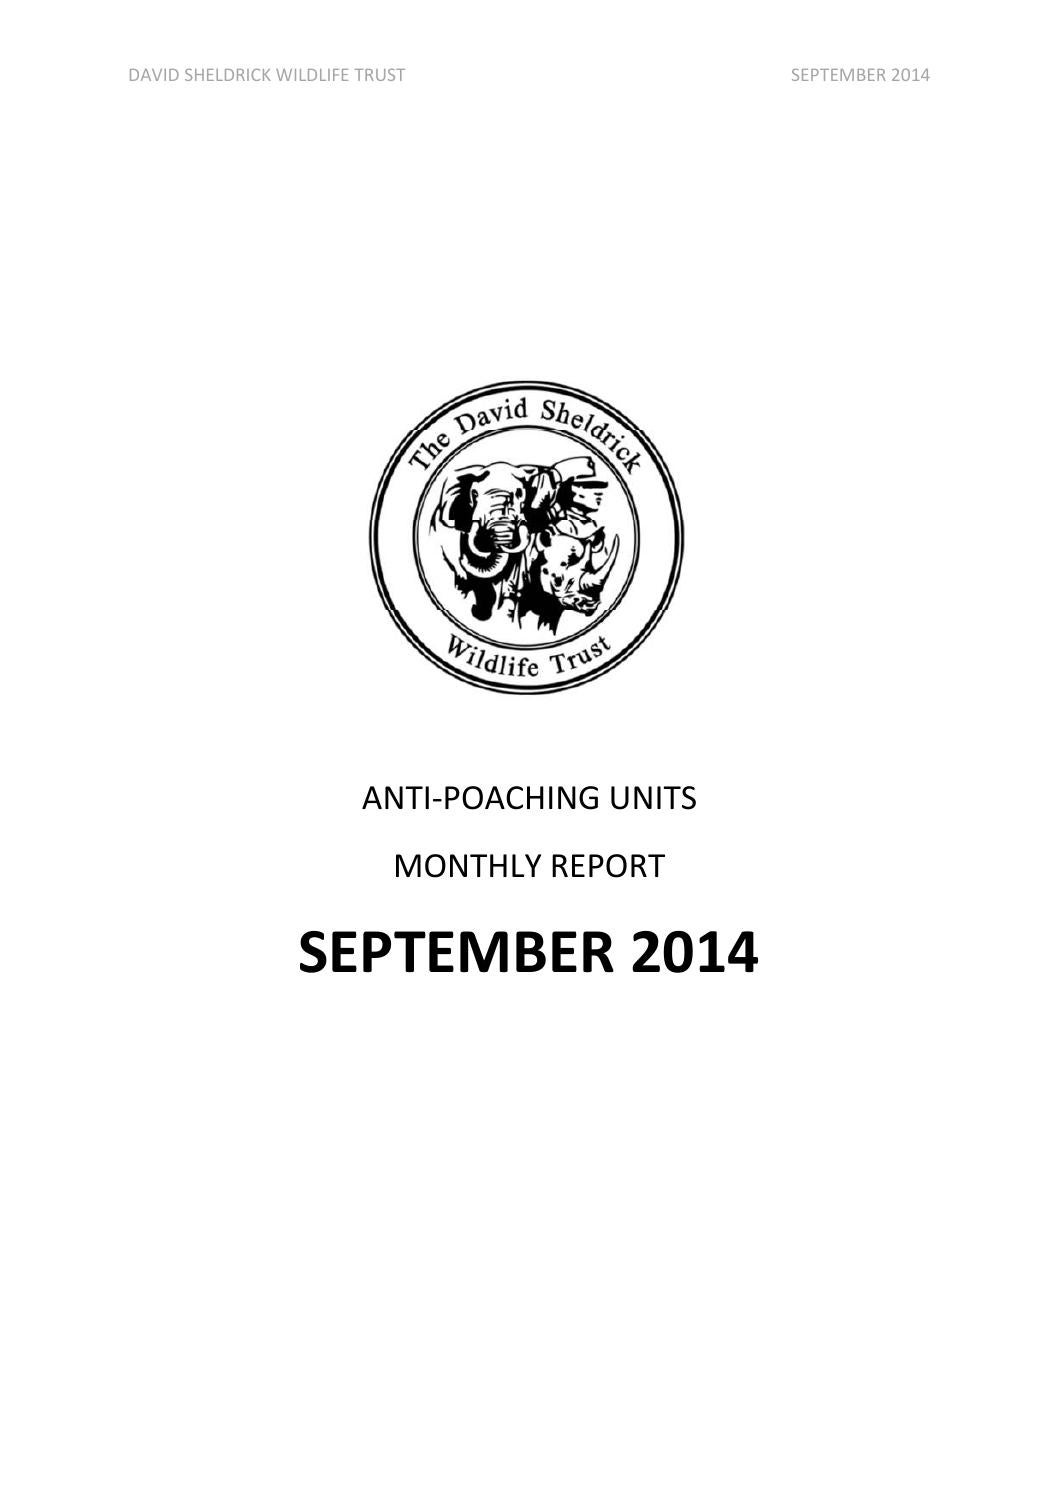 DSWT Anti-Poaching Units Report September 2014 by